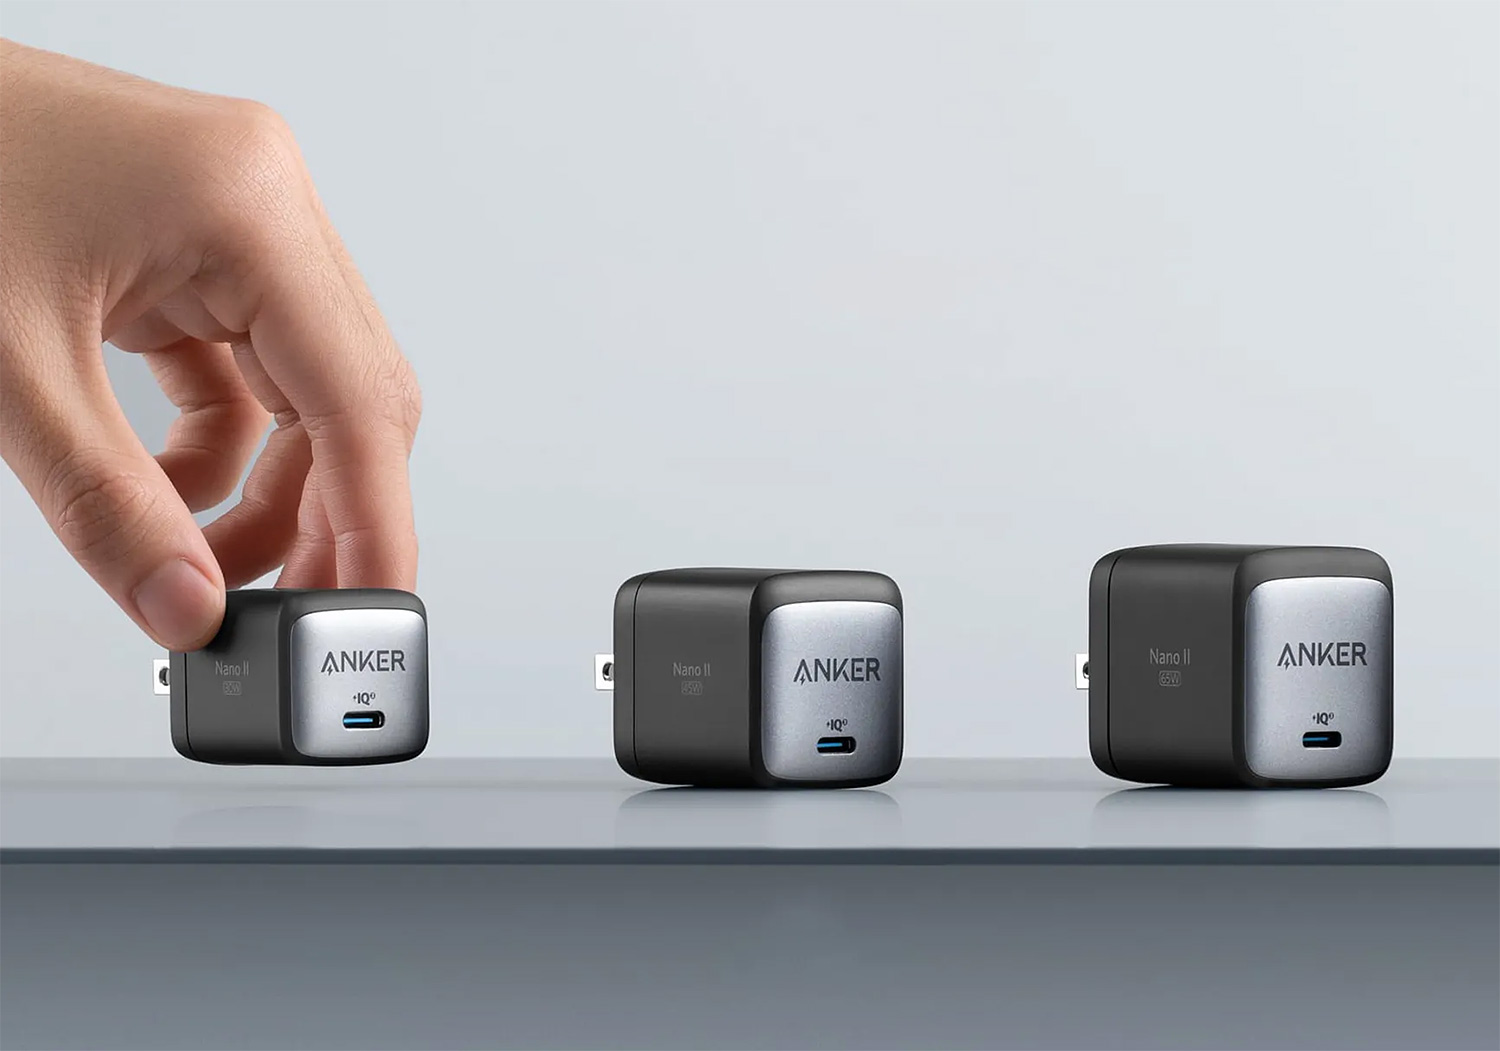 Anker Nano II GaN Chargers: Small Is Powerful at werd.com